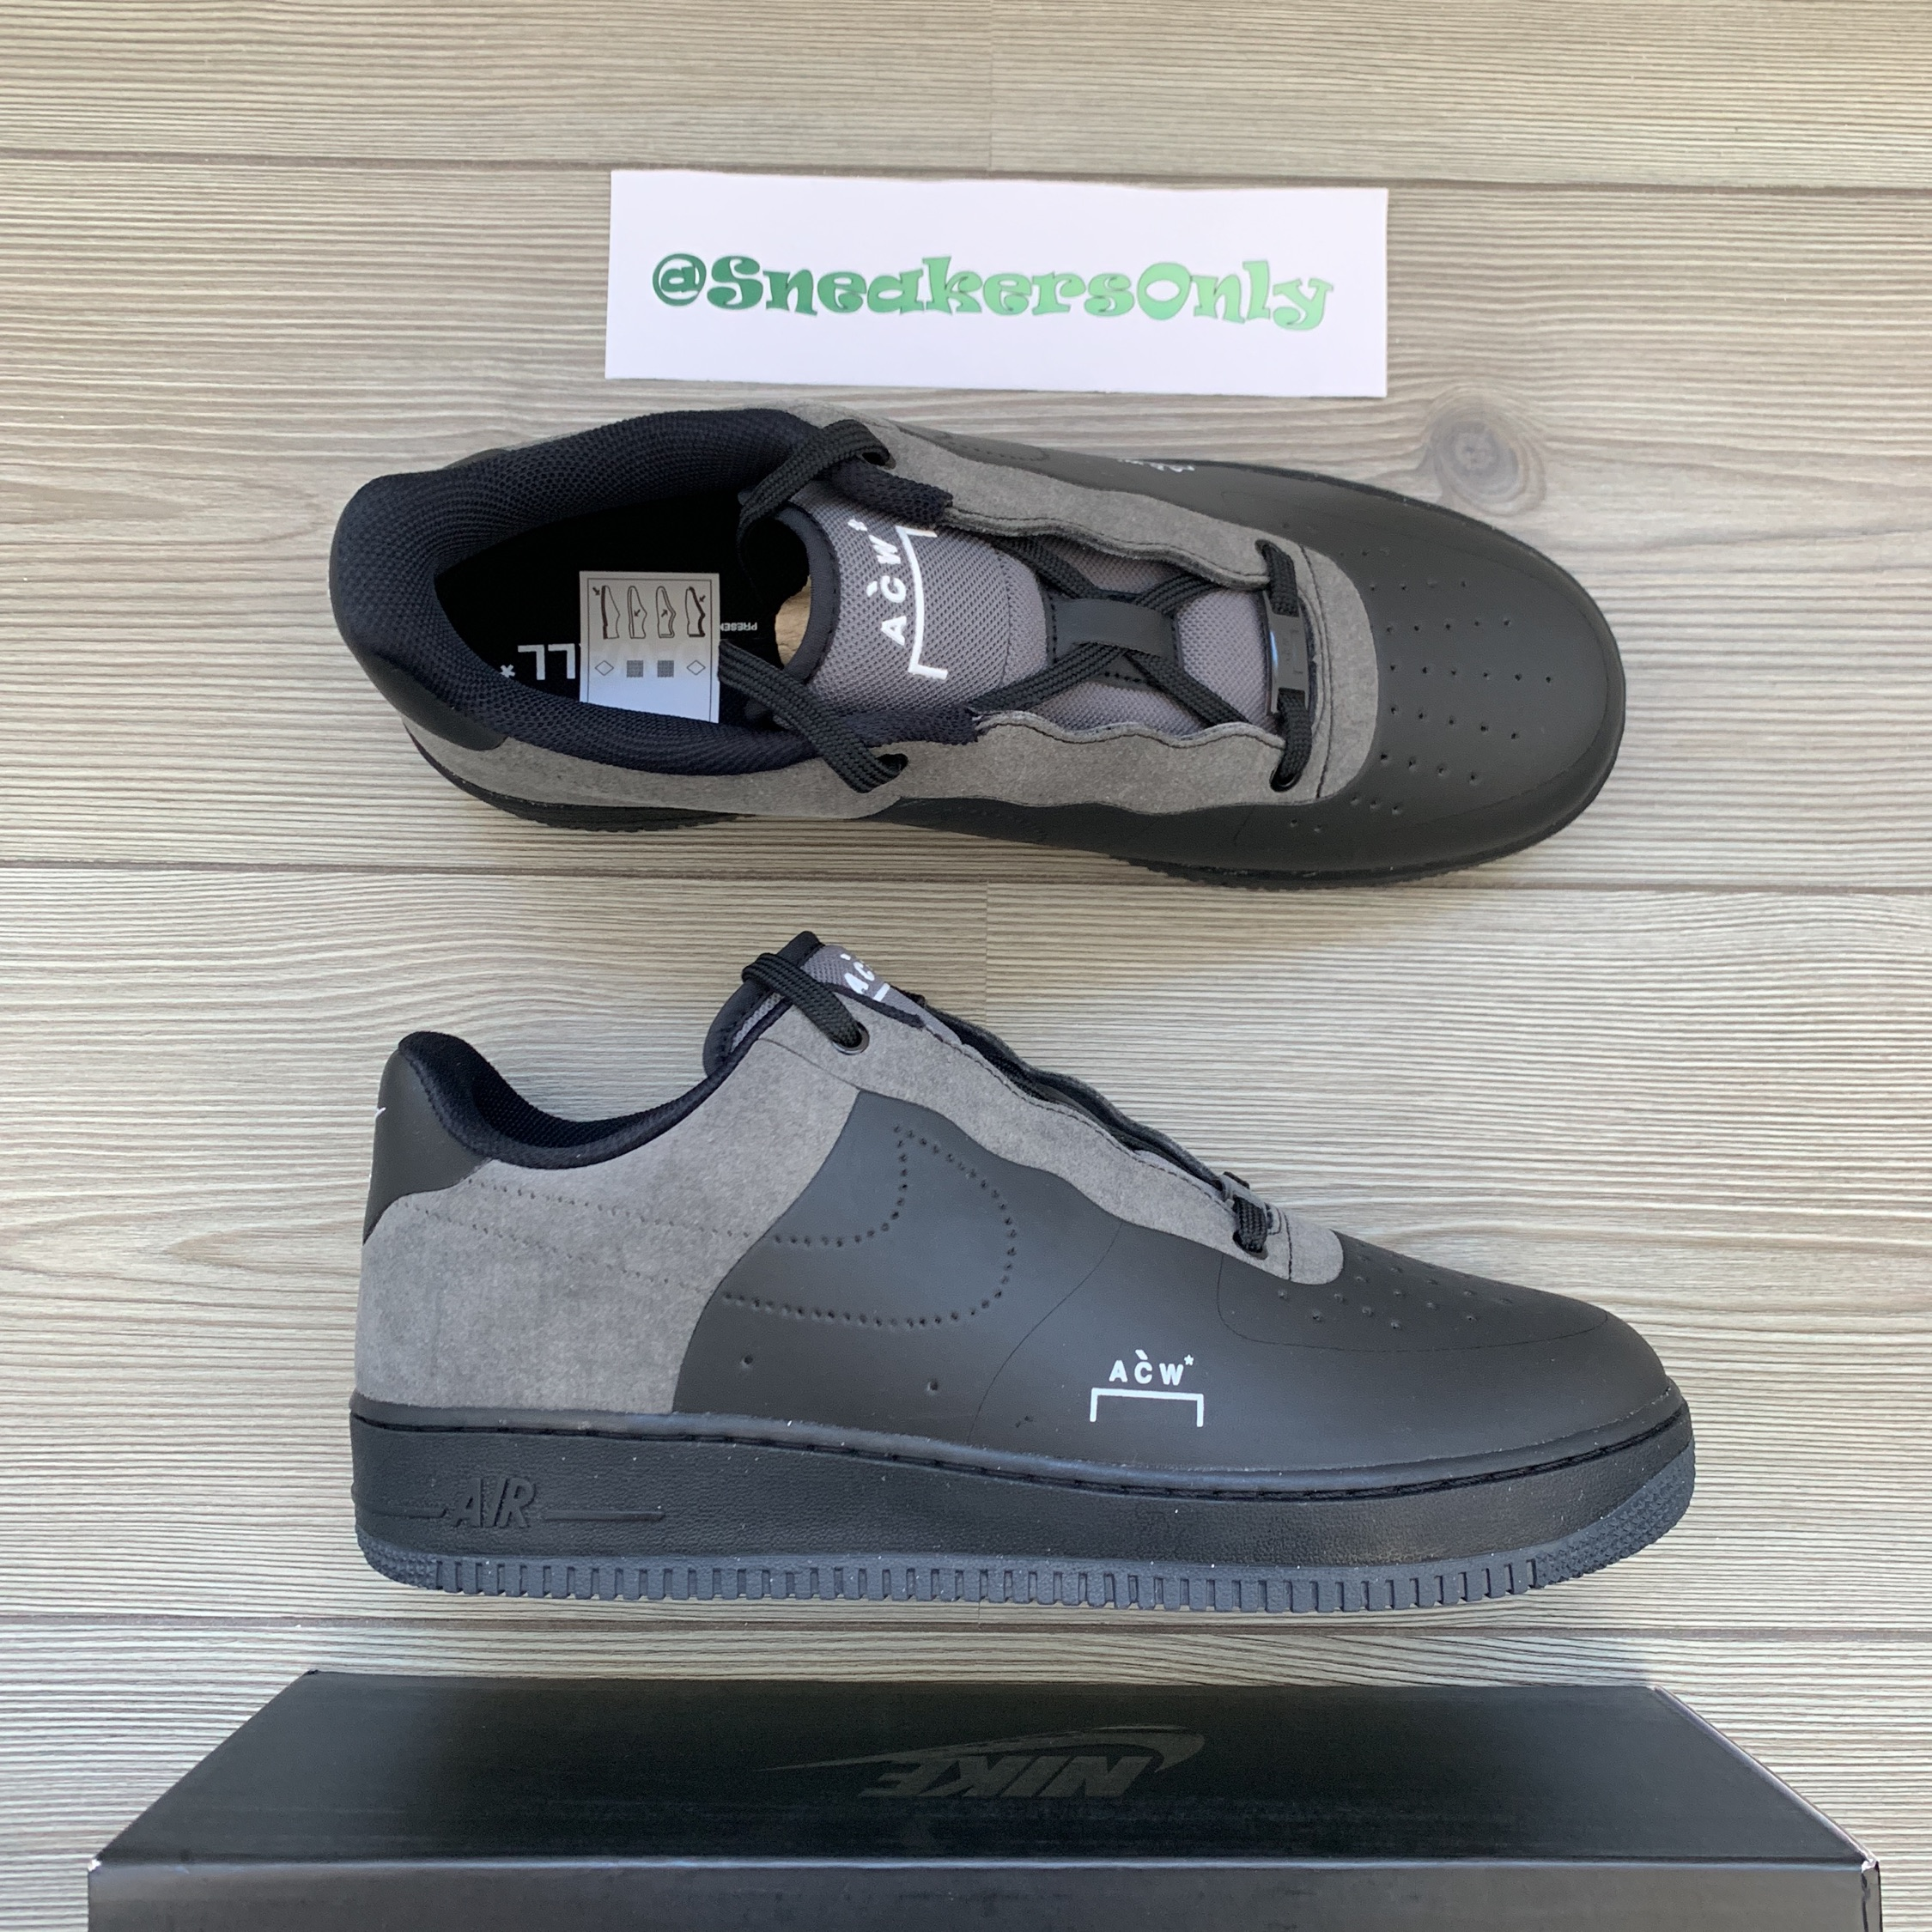 new style 0af90 24418 3bf89ddeb8c450ea9ff2babe0f40b51e listingImg2 dGl9BipY7Z.jpg. The Nike Air  Force 1  07 LV8 Utility Low in Olive and Black drops 1